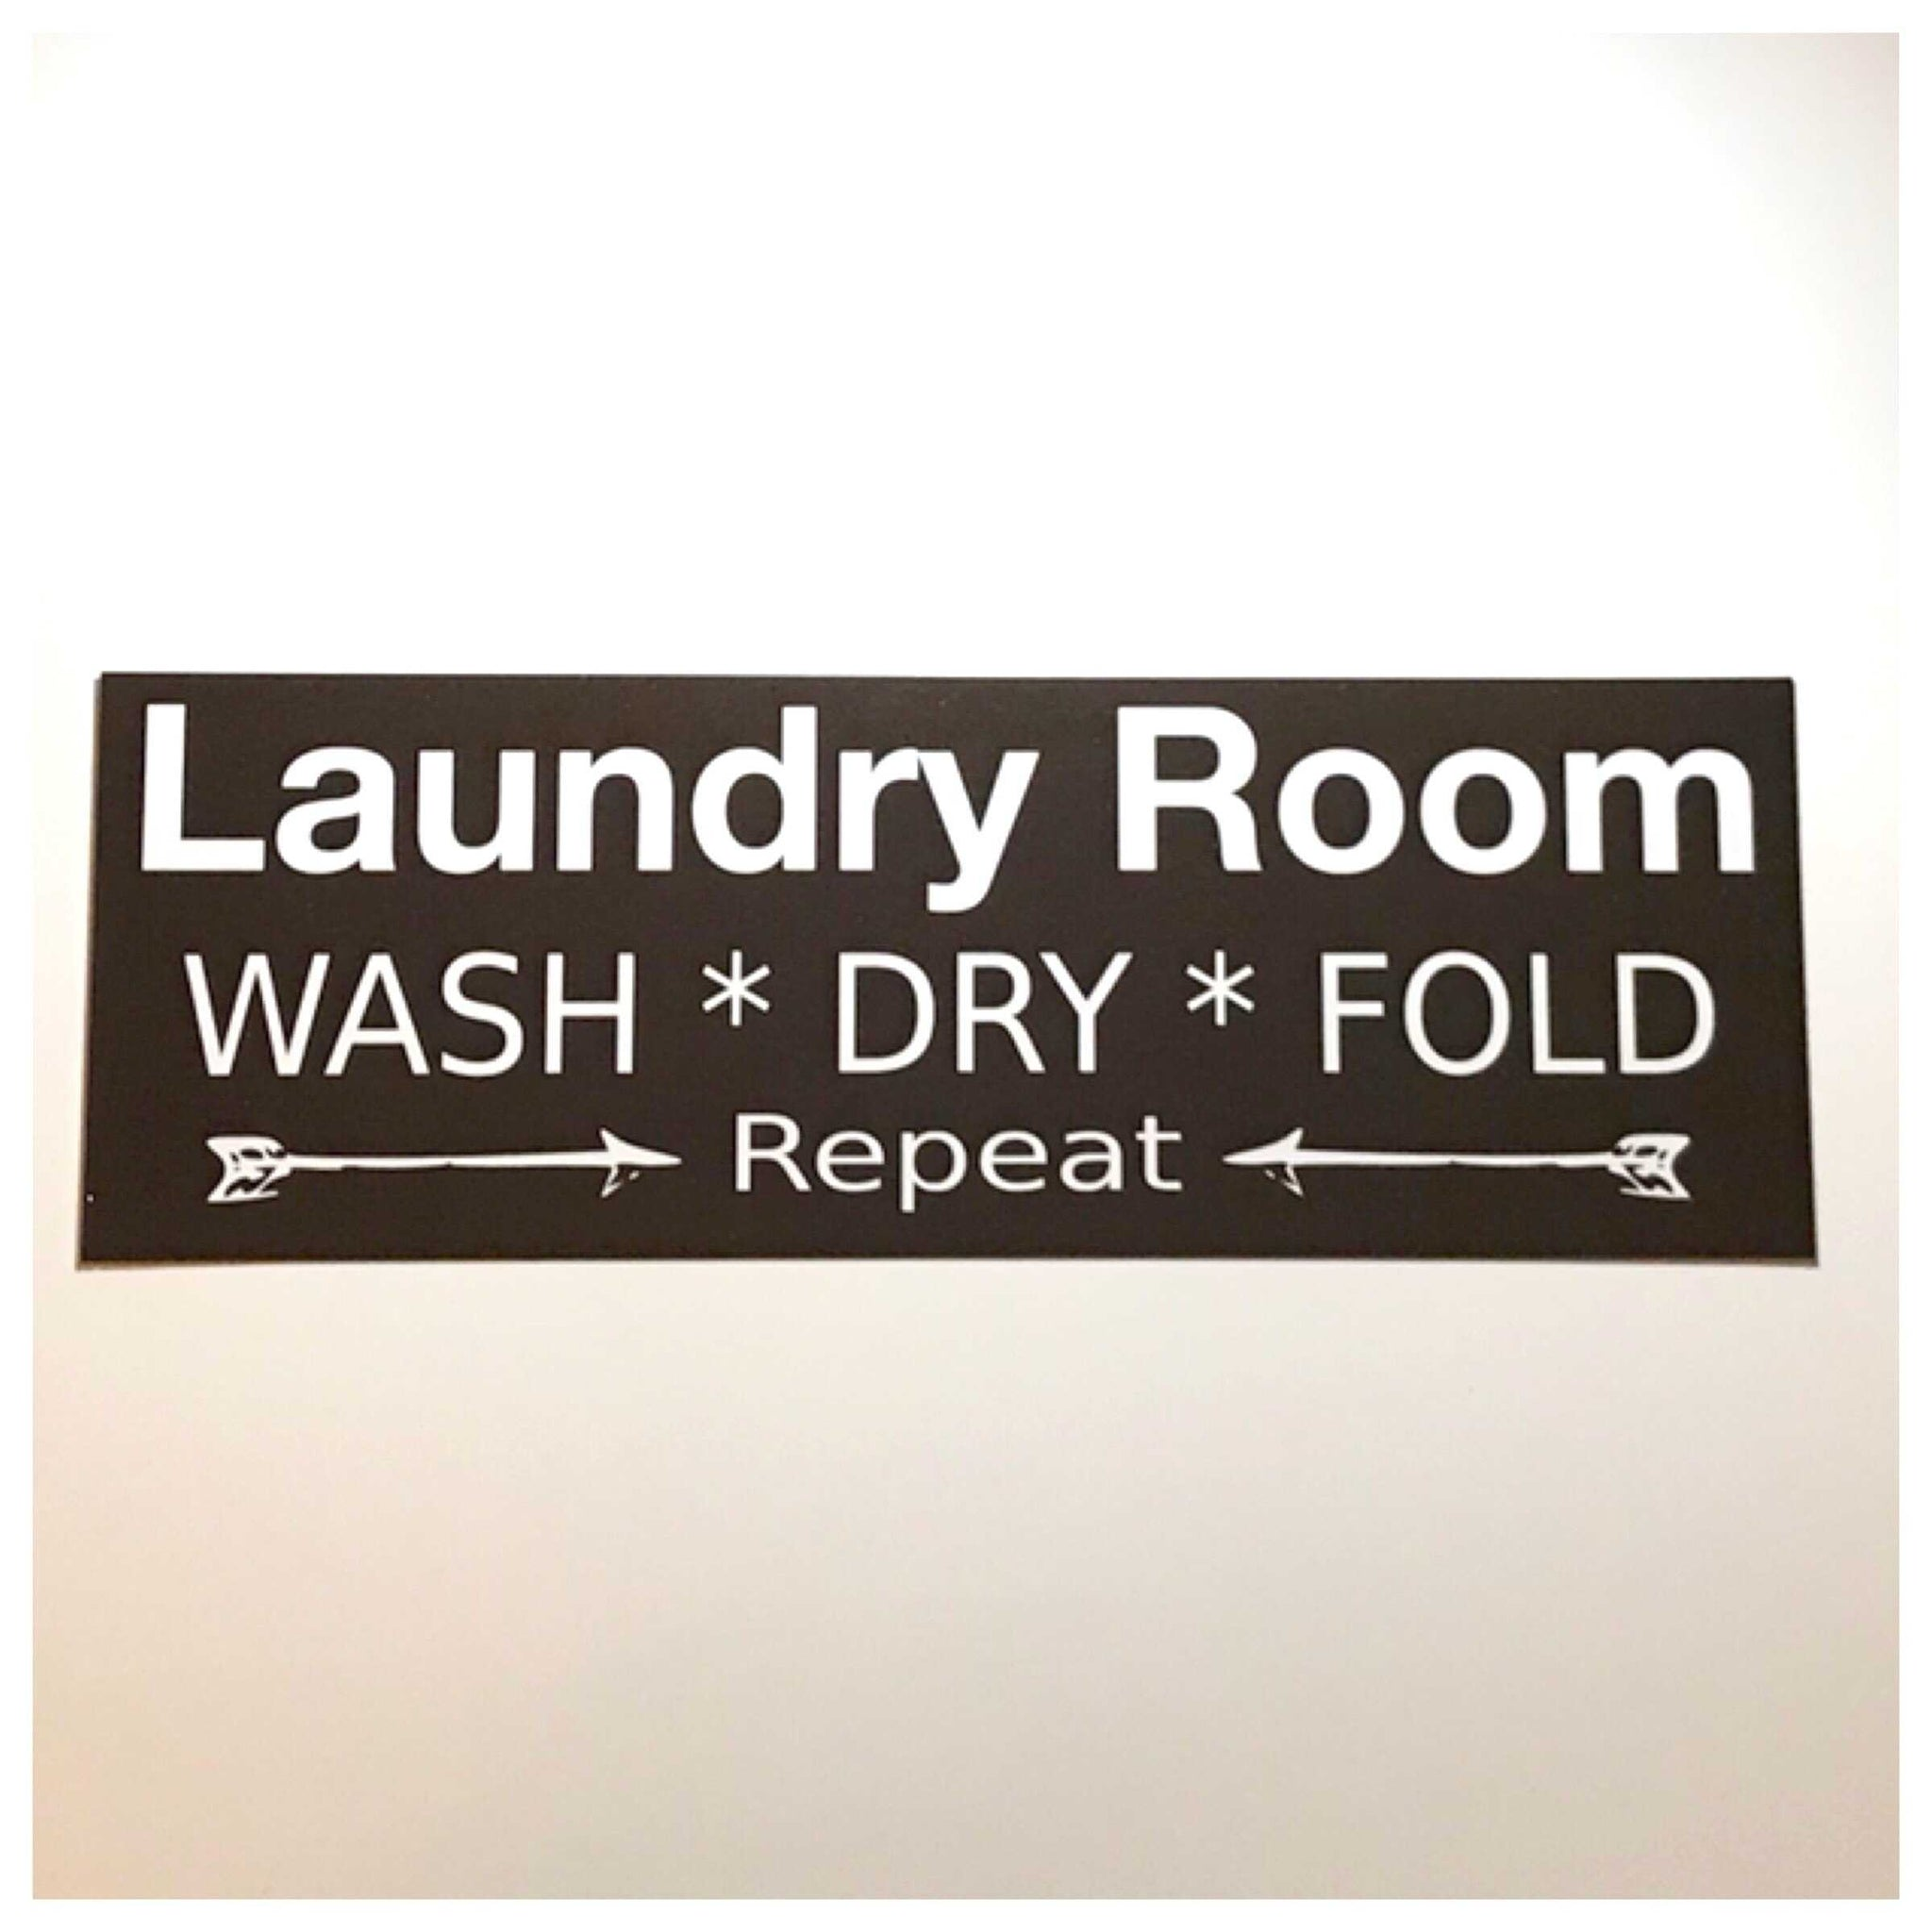 Laundry Room Wash Dry Fold Repeat Black Sign - The Renmy Store